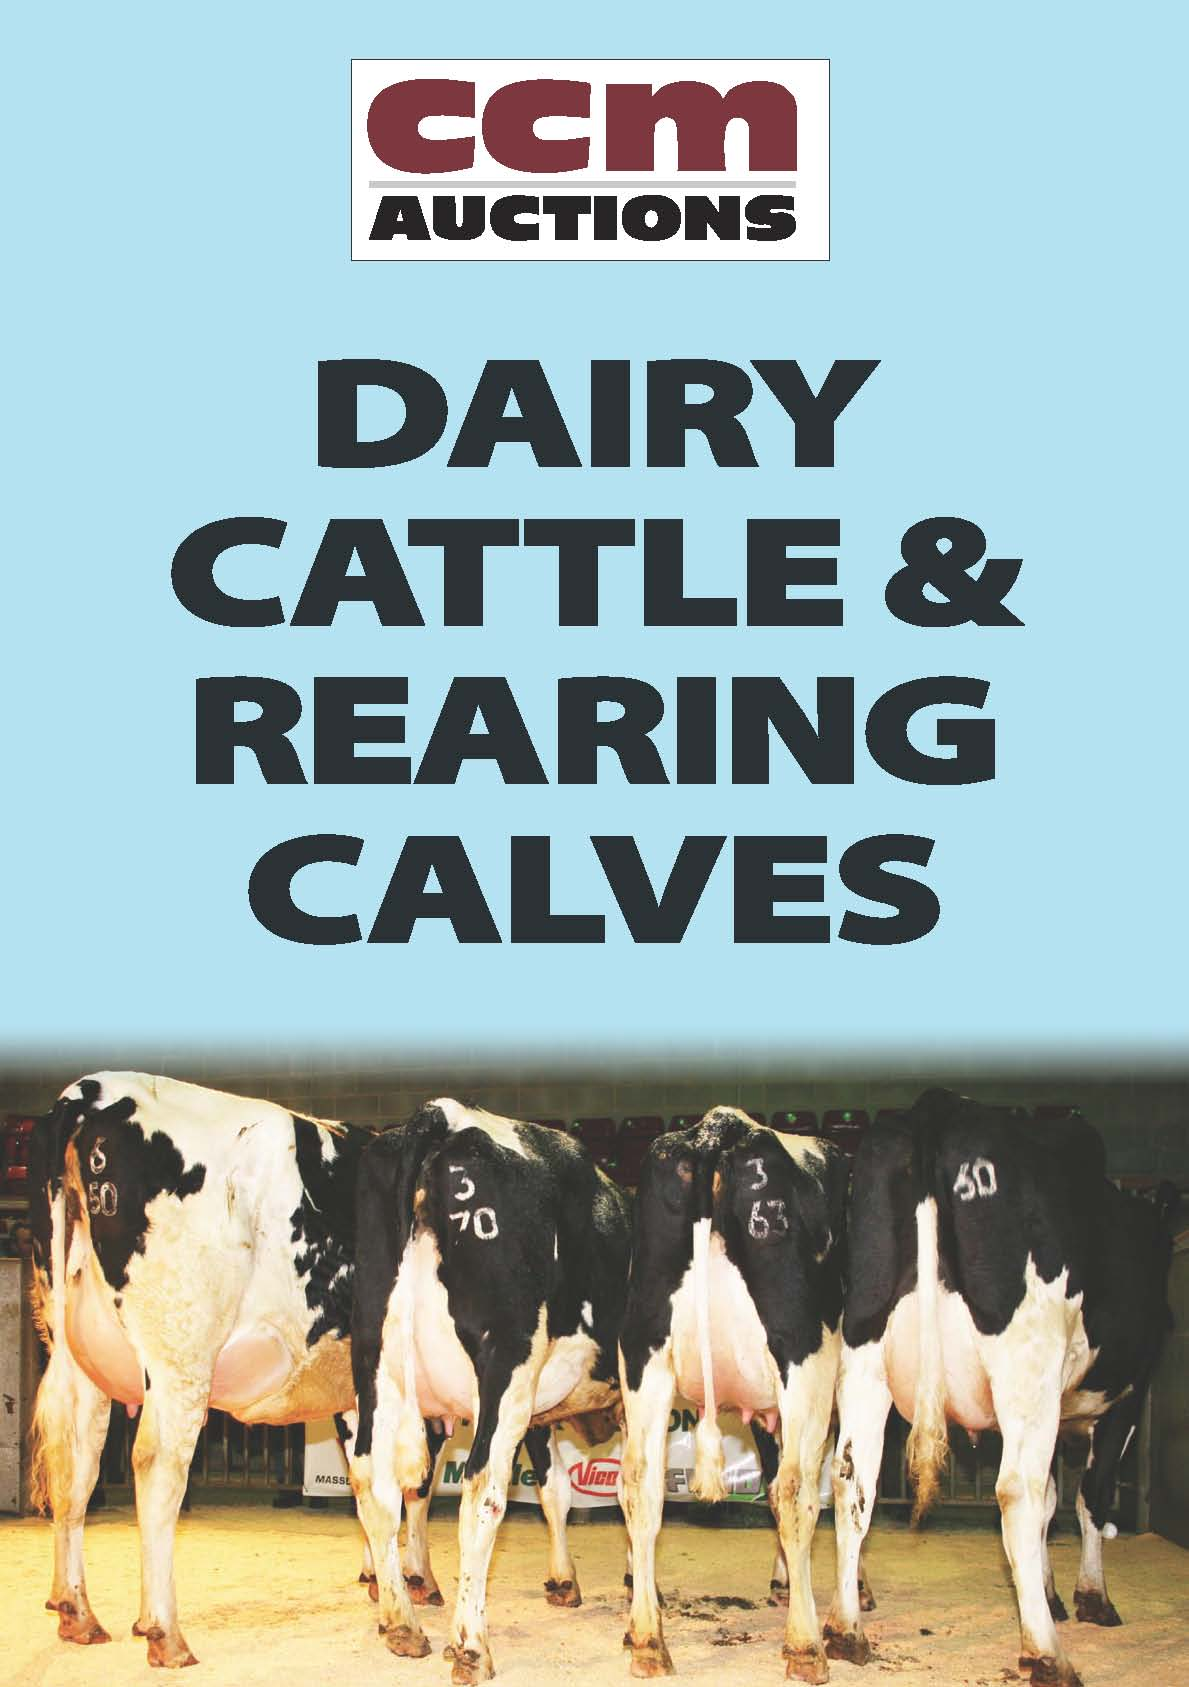 DAIRY & CALVES - MONDAY 20TH JUNE 2016